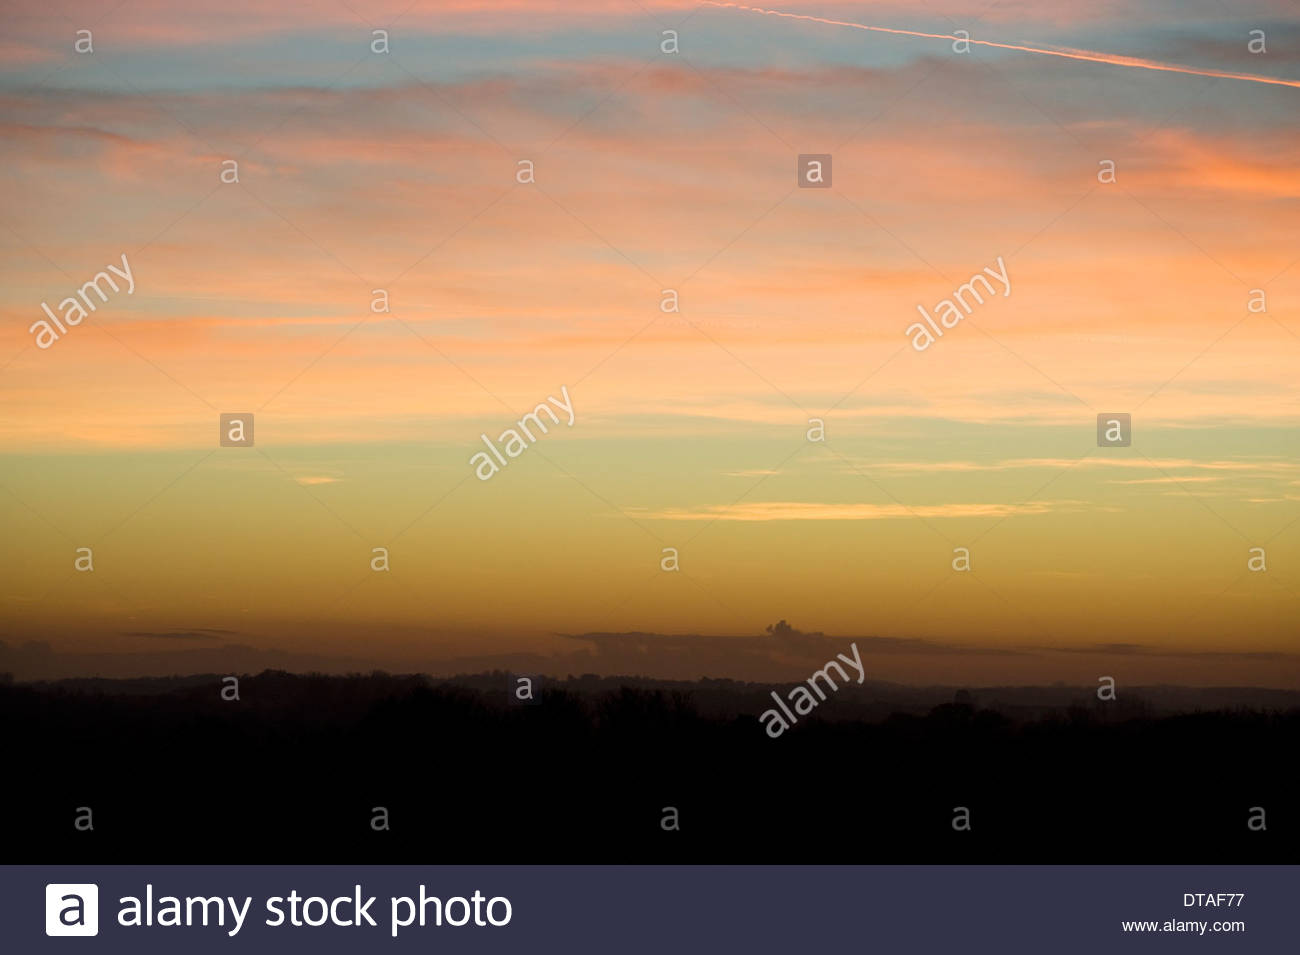 cloudy cloud cloudscape sky at sunset with many colors graduation vapor trail - Stock Image